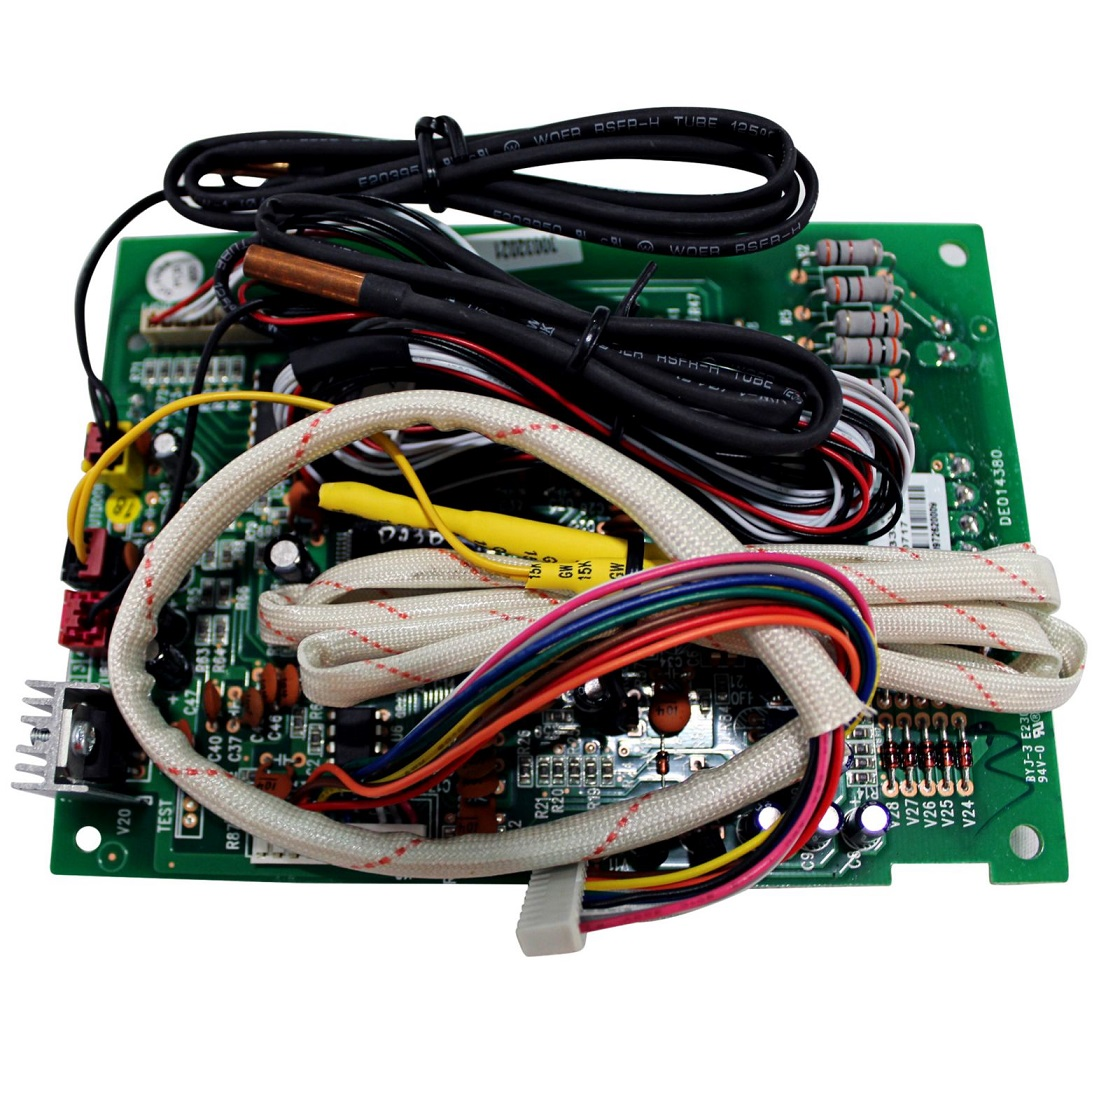 Gree Ptac Part 30032021 Main Control Circuit Board 1 Cool Running Thermostat Wiring Air Conditioners More